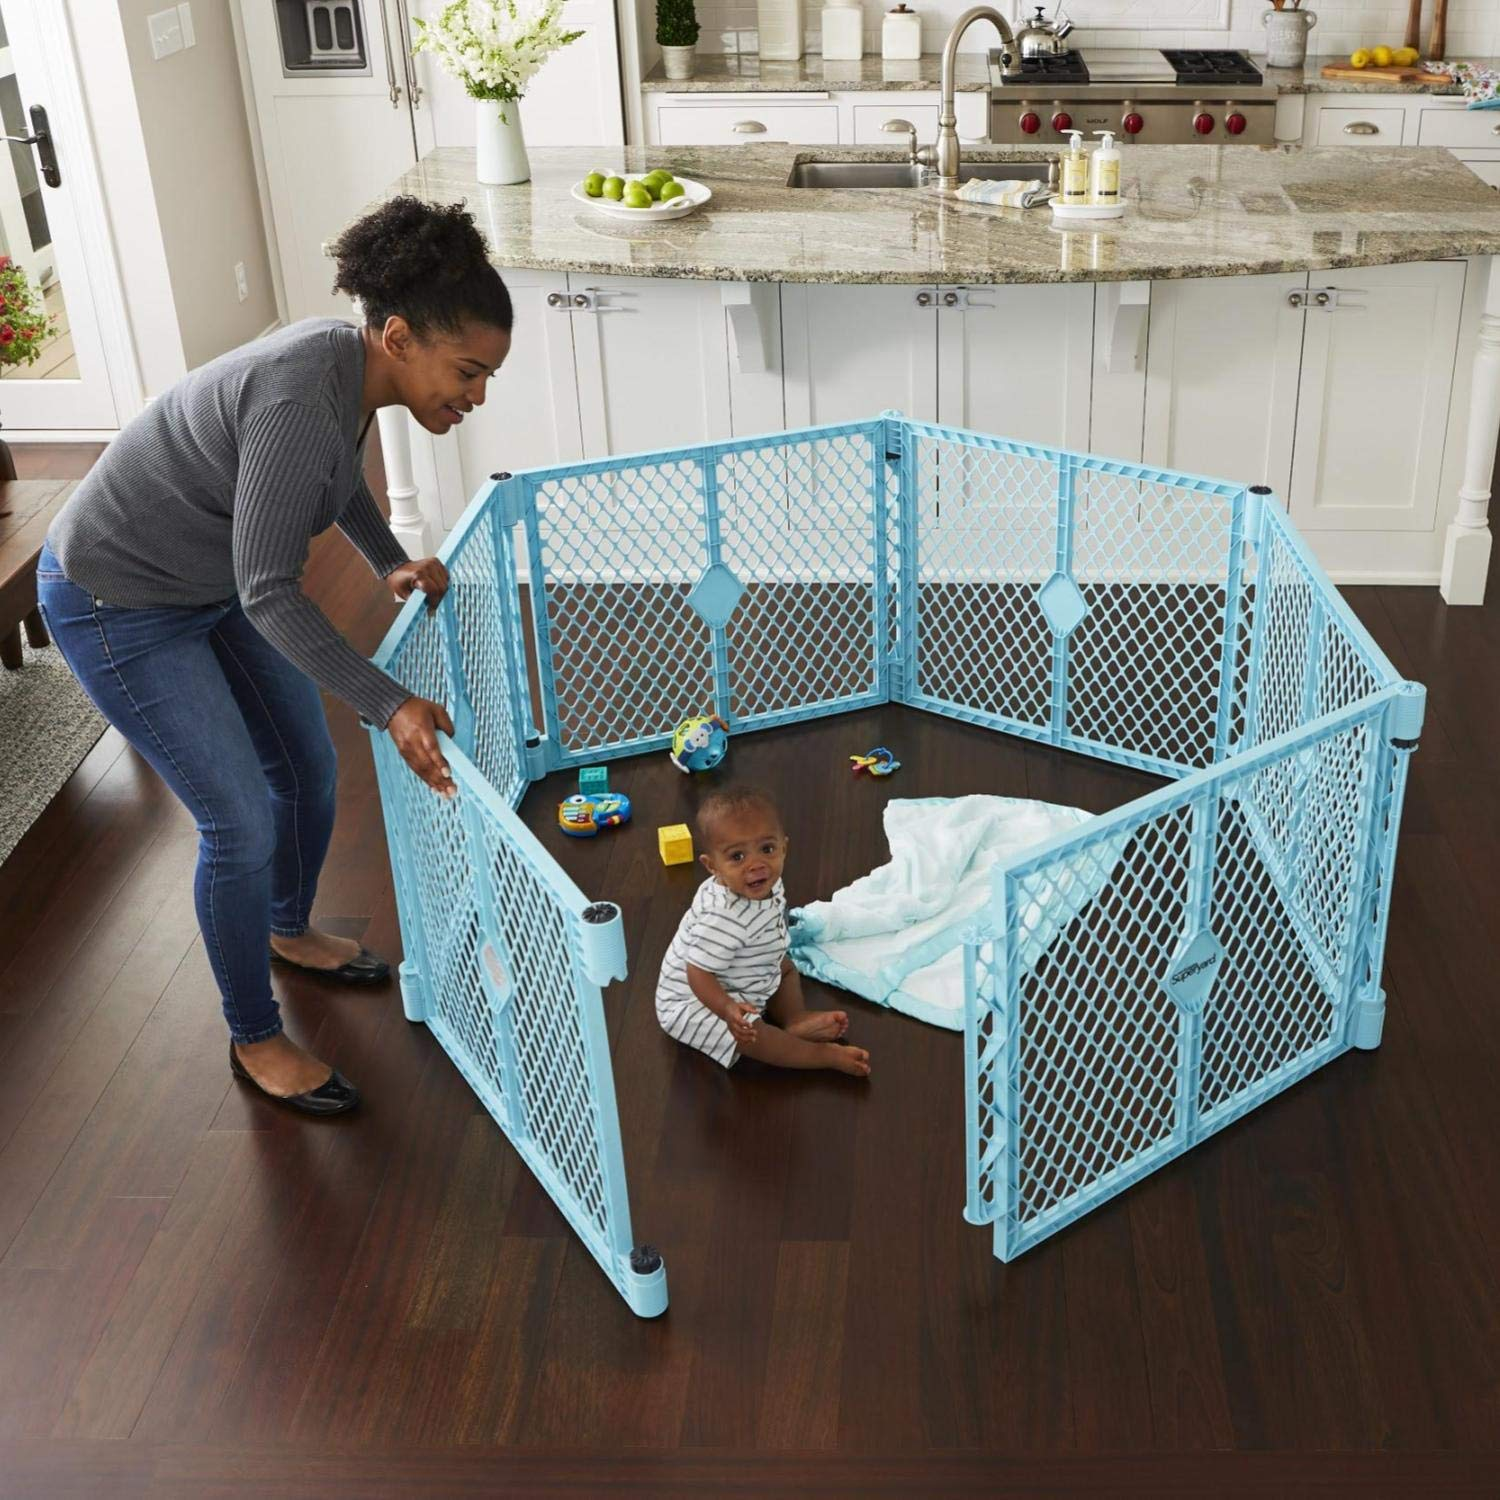 """Toddleroo by North States Superyard Indoor/Outdoor 6 Panel Baby Play Yard: Safe Play Area Anywhere. Folds up with Carrying Strap for Easy Travel. Freestanding. 18.5 sq. ft. Enclosure (26"""" Tall, Aqua)"""